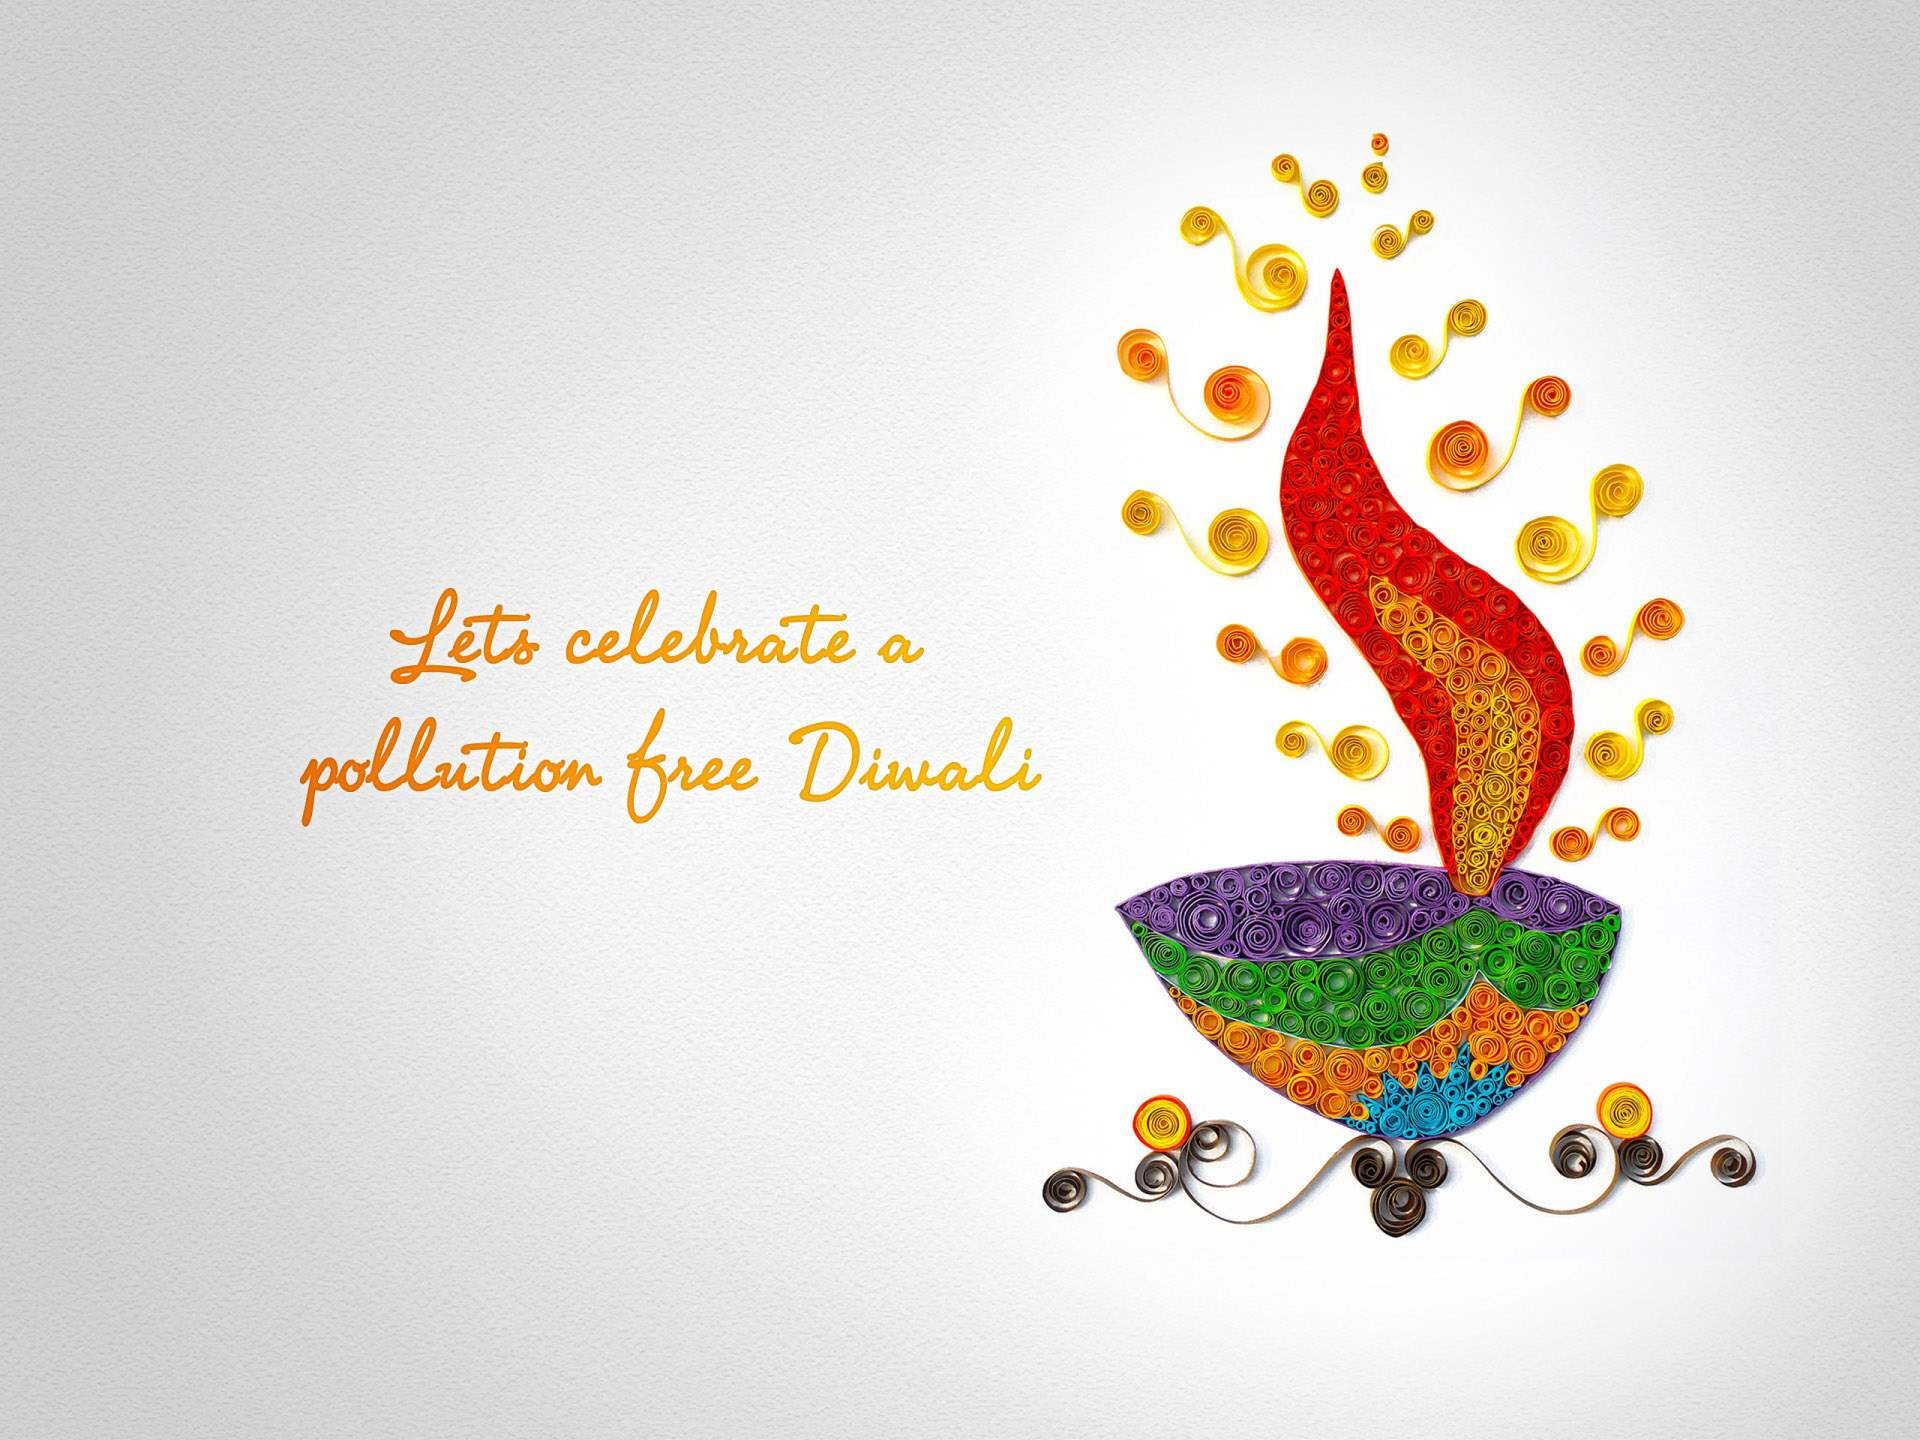 Full hd diwali wallpapers and greeting cards page 2 happy diwali wallpapers images 2015 designsmag 04 m4hsunfo